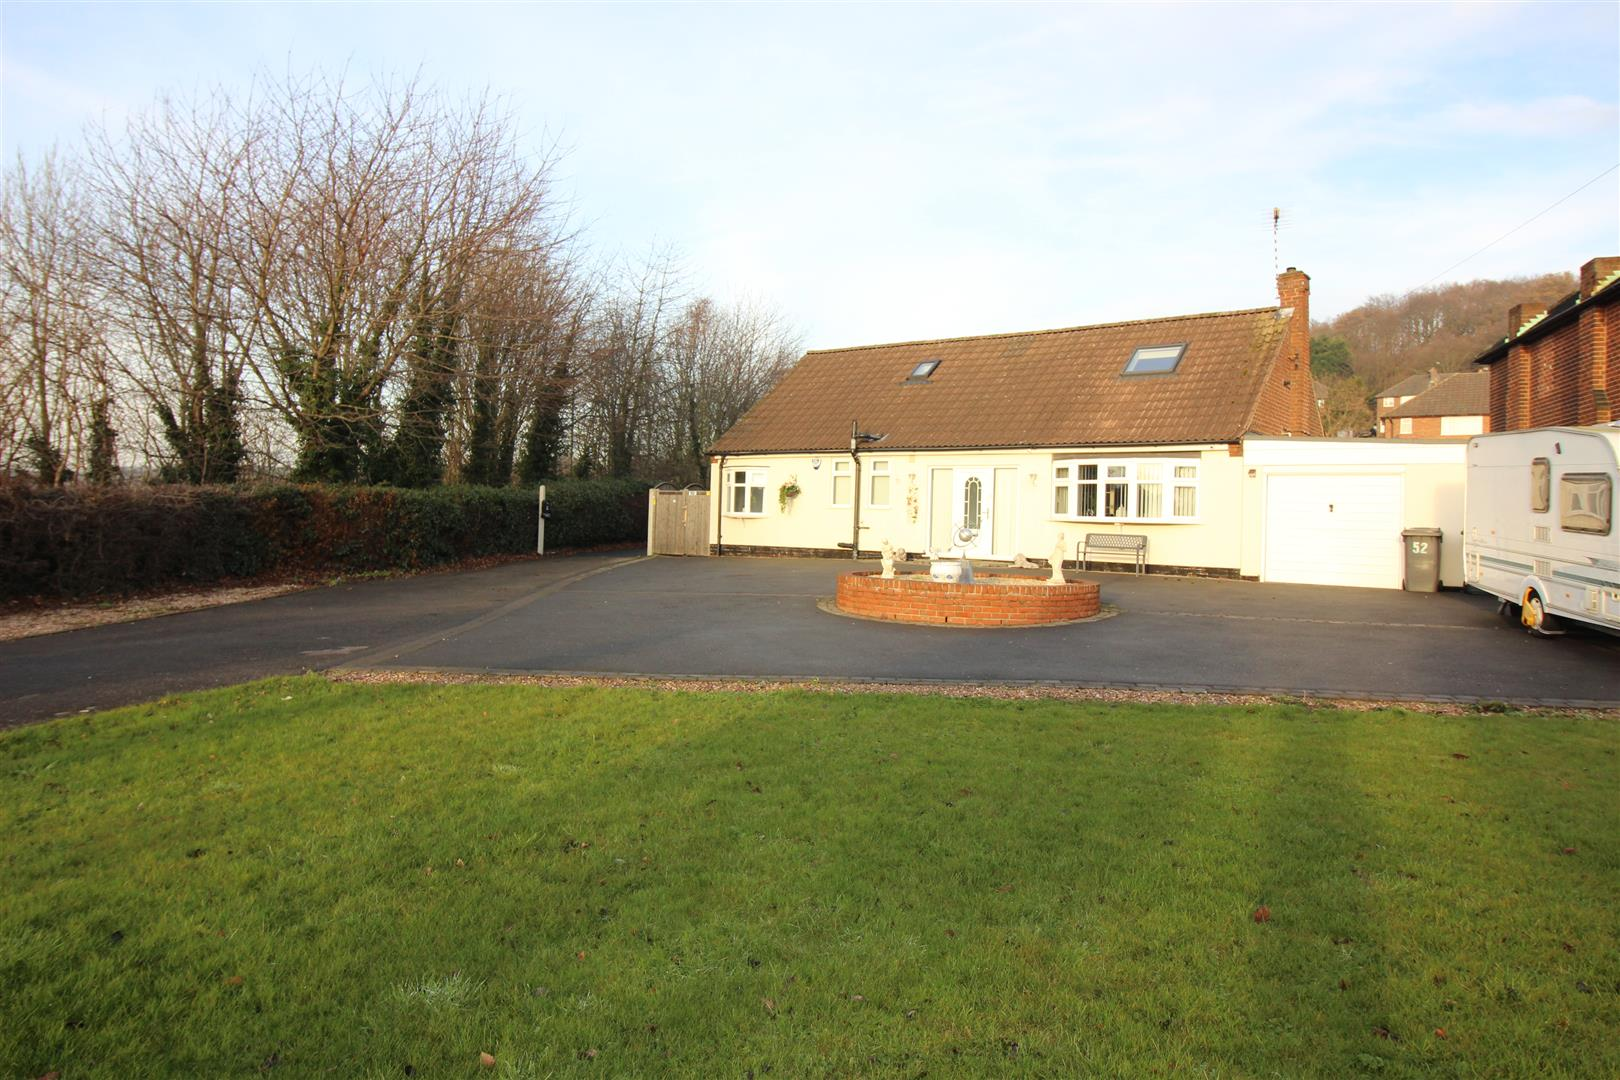 3 Bedrooms Bungalow for sale in Ilkeston Road, Stapleford, Nottingham